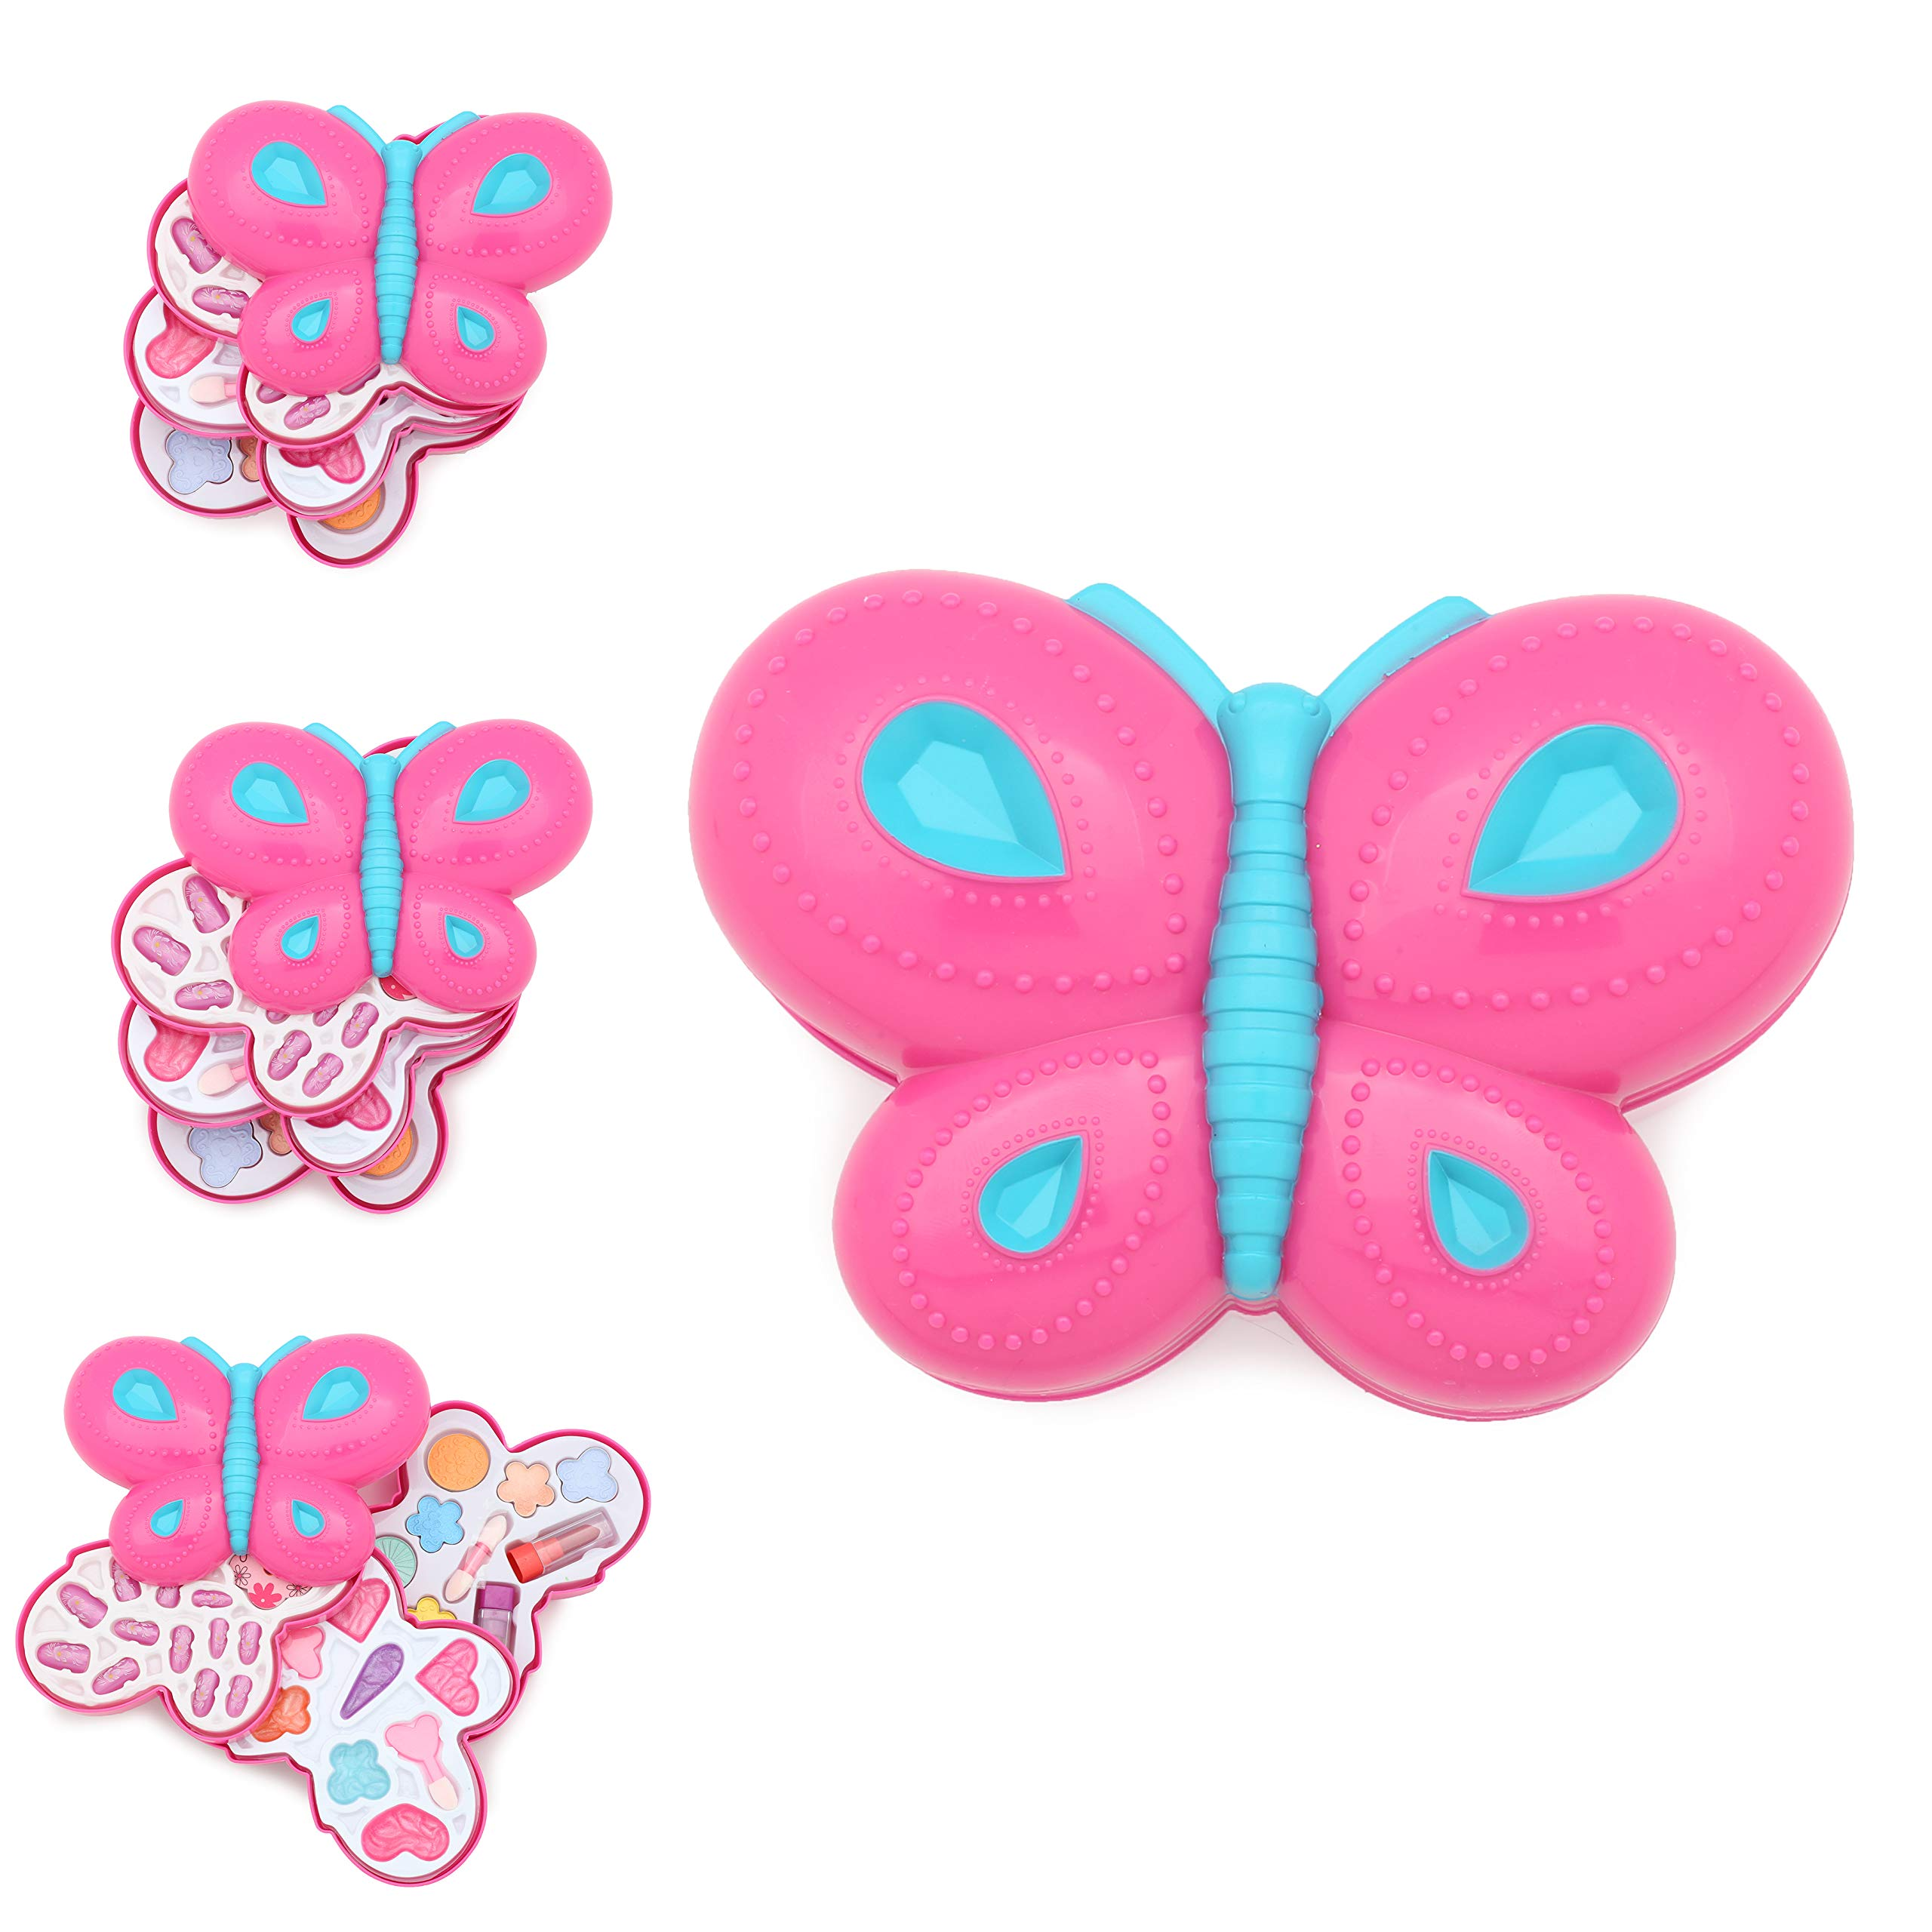 KreativeKraft Kids Make Up Set Children Makeup for Girls Fancy Dress Accessory Beauty Case Butterfly